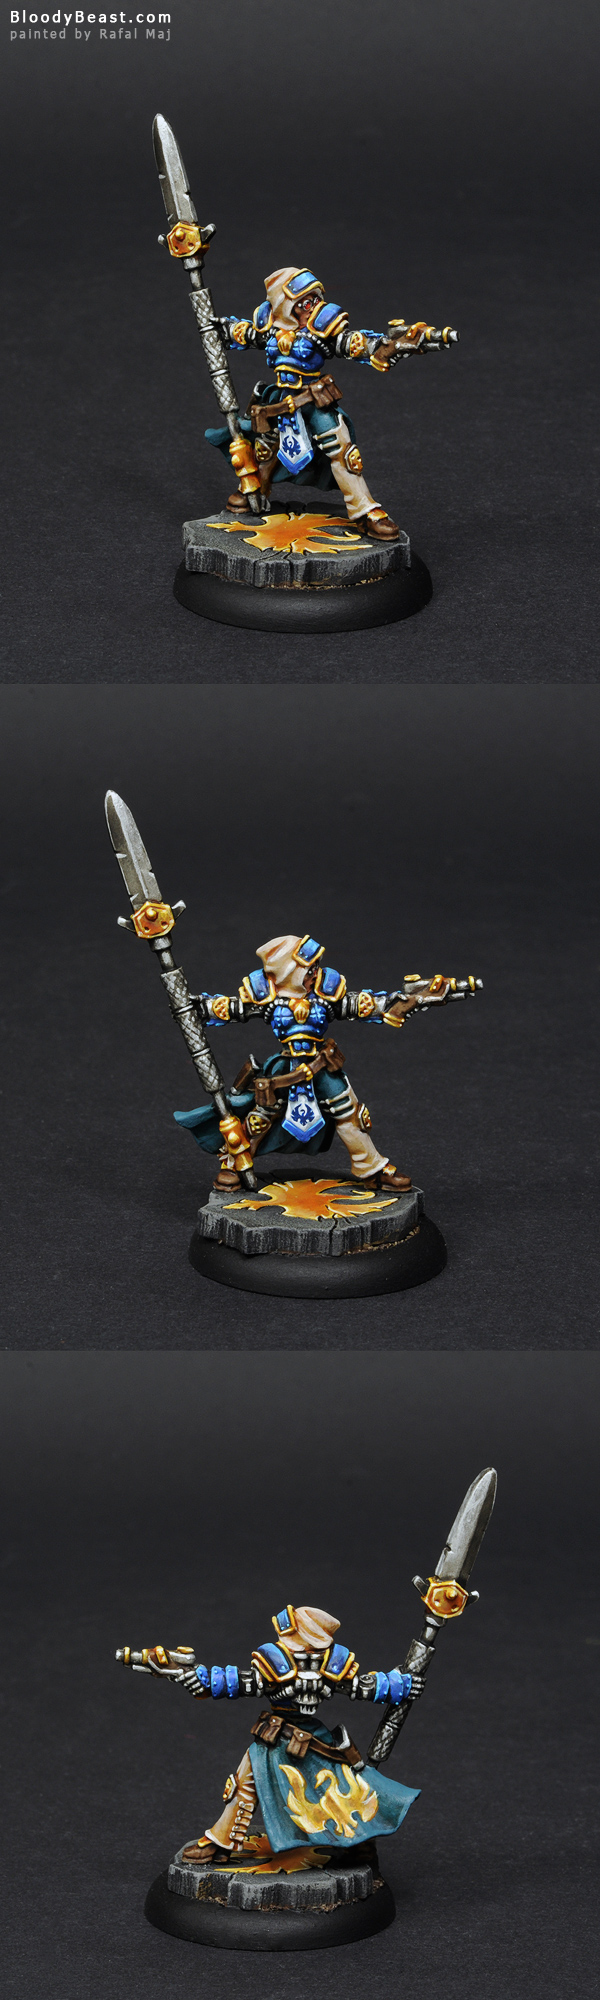 Captain Victoria Haley painted by Rafal Maj (BloodyBeast.com)